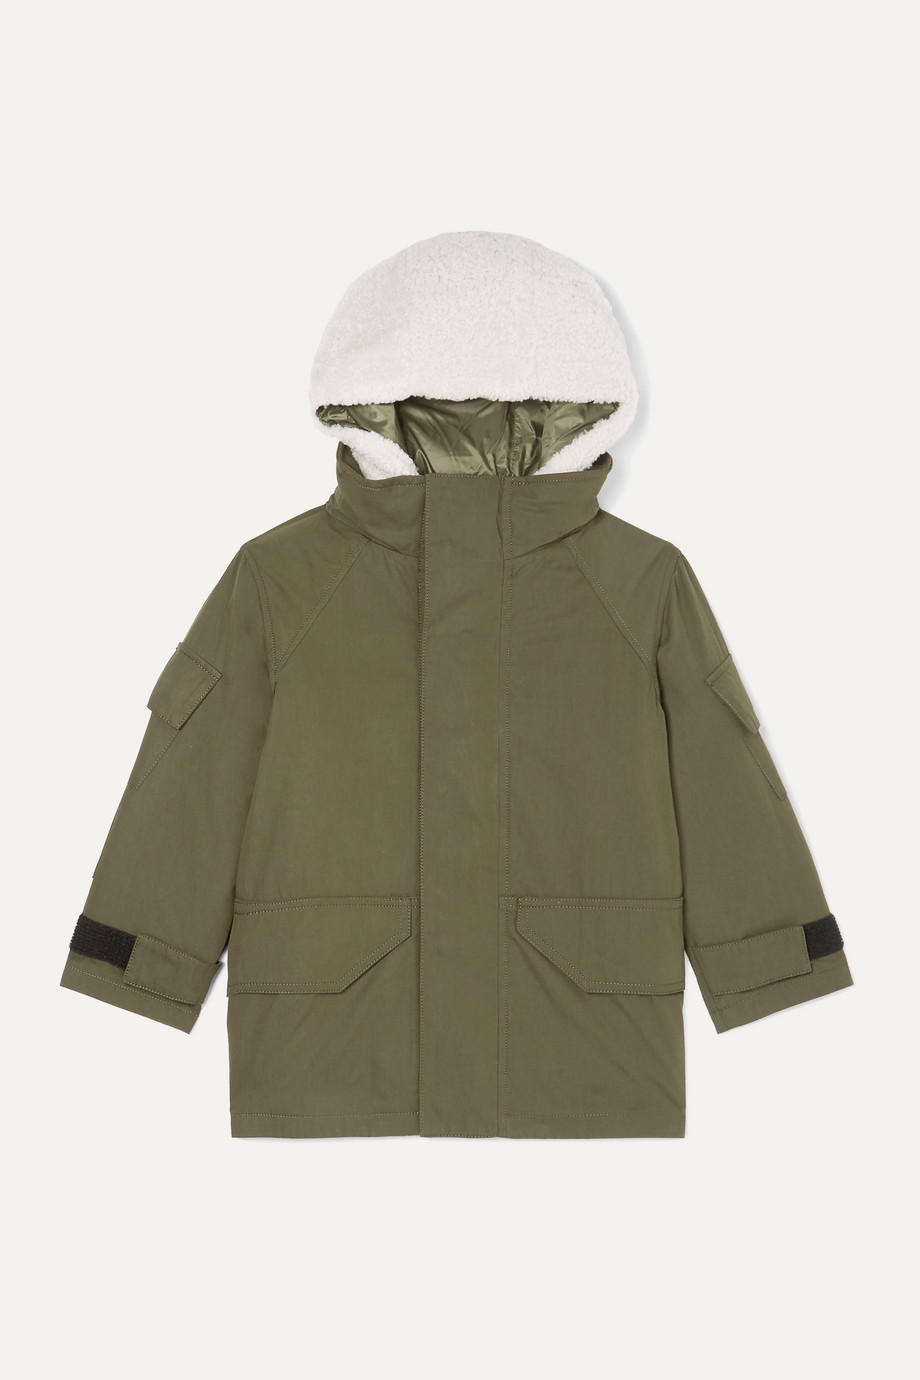 Yves Salomon Kids Ages 4 - 6 hooded layered cotton-blend twill and shearling parka